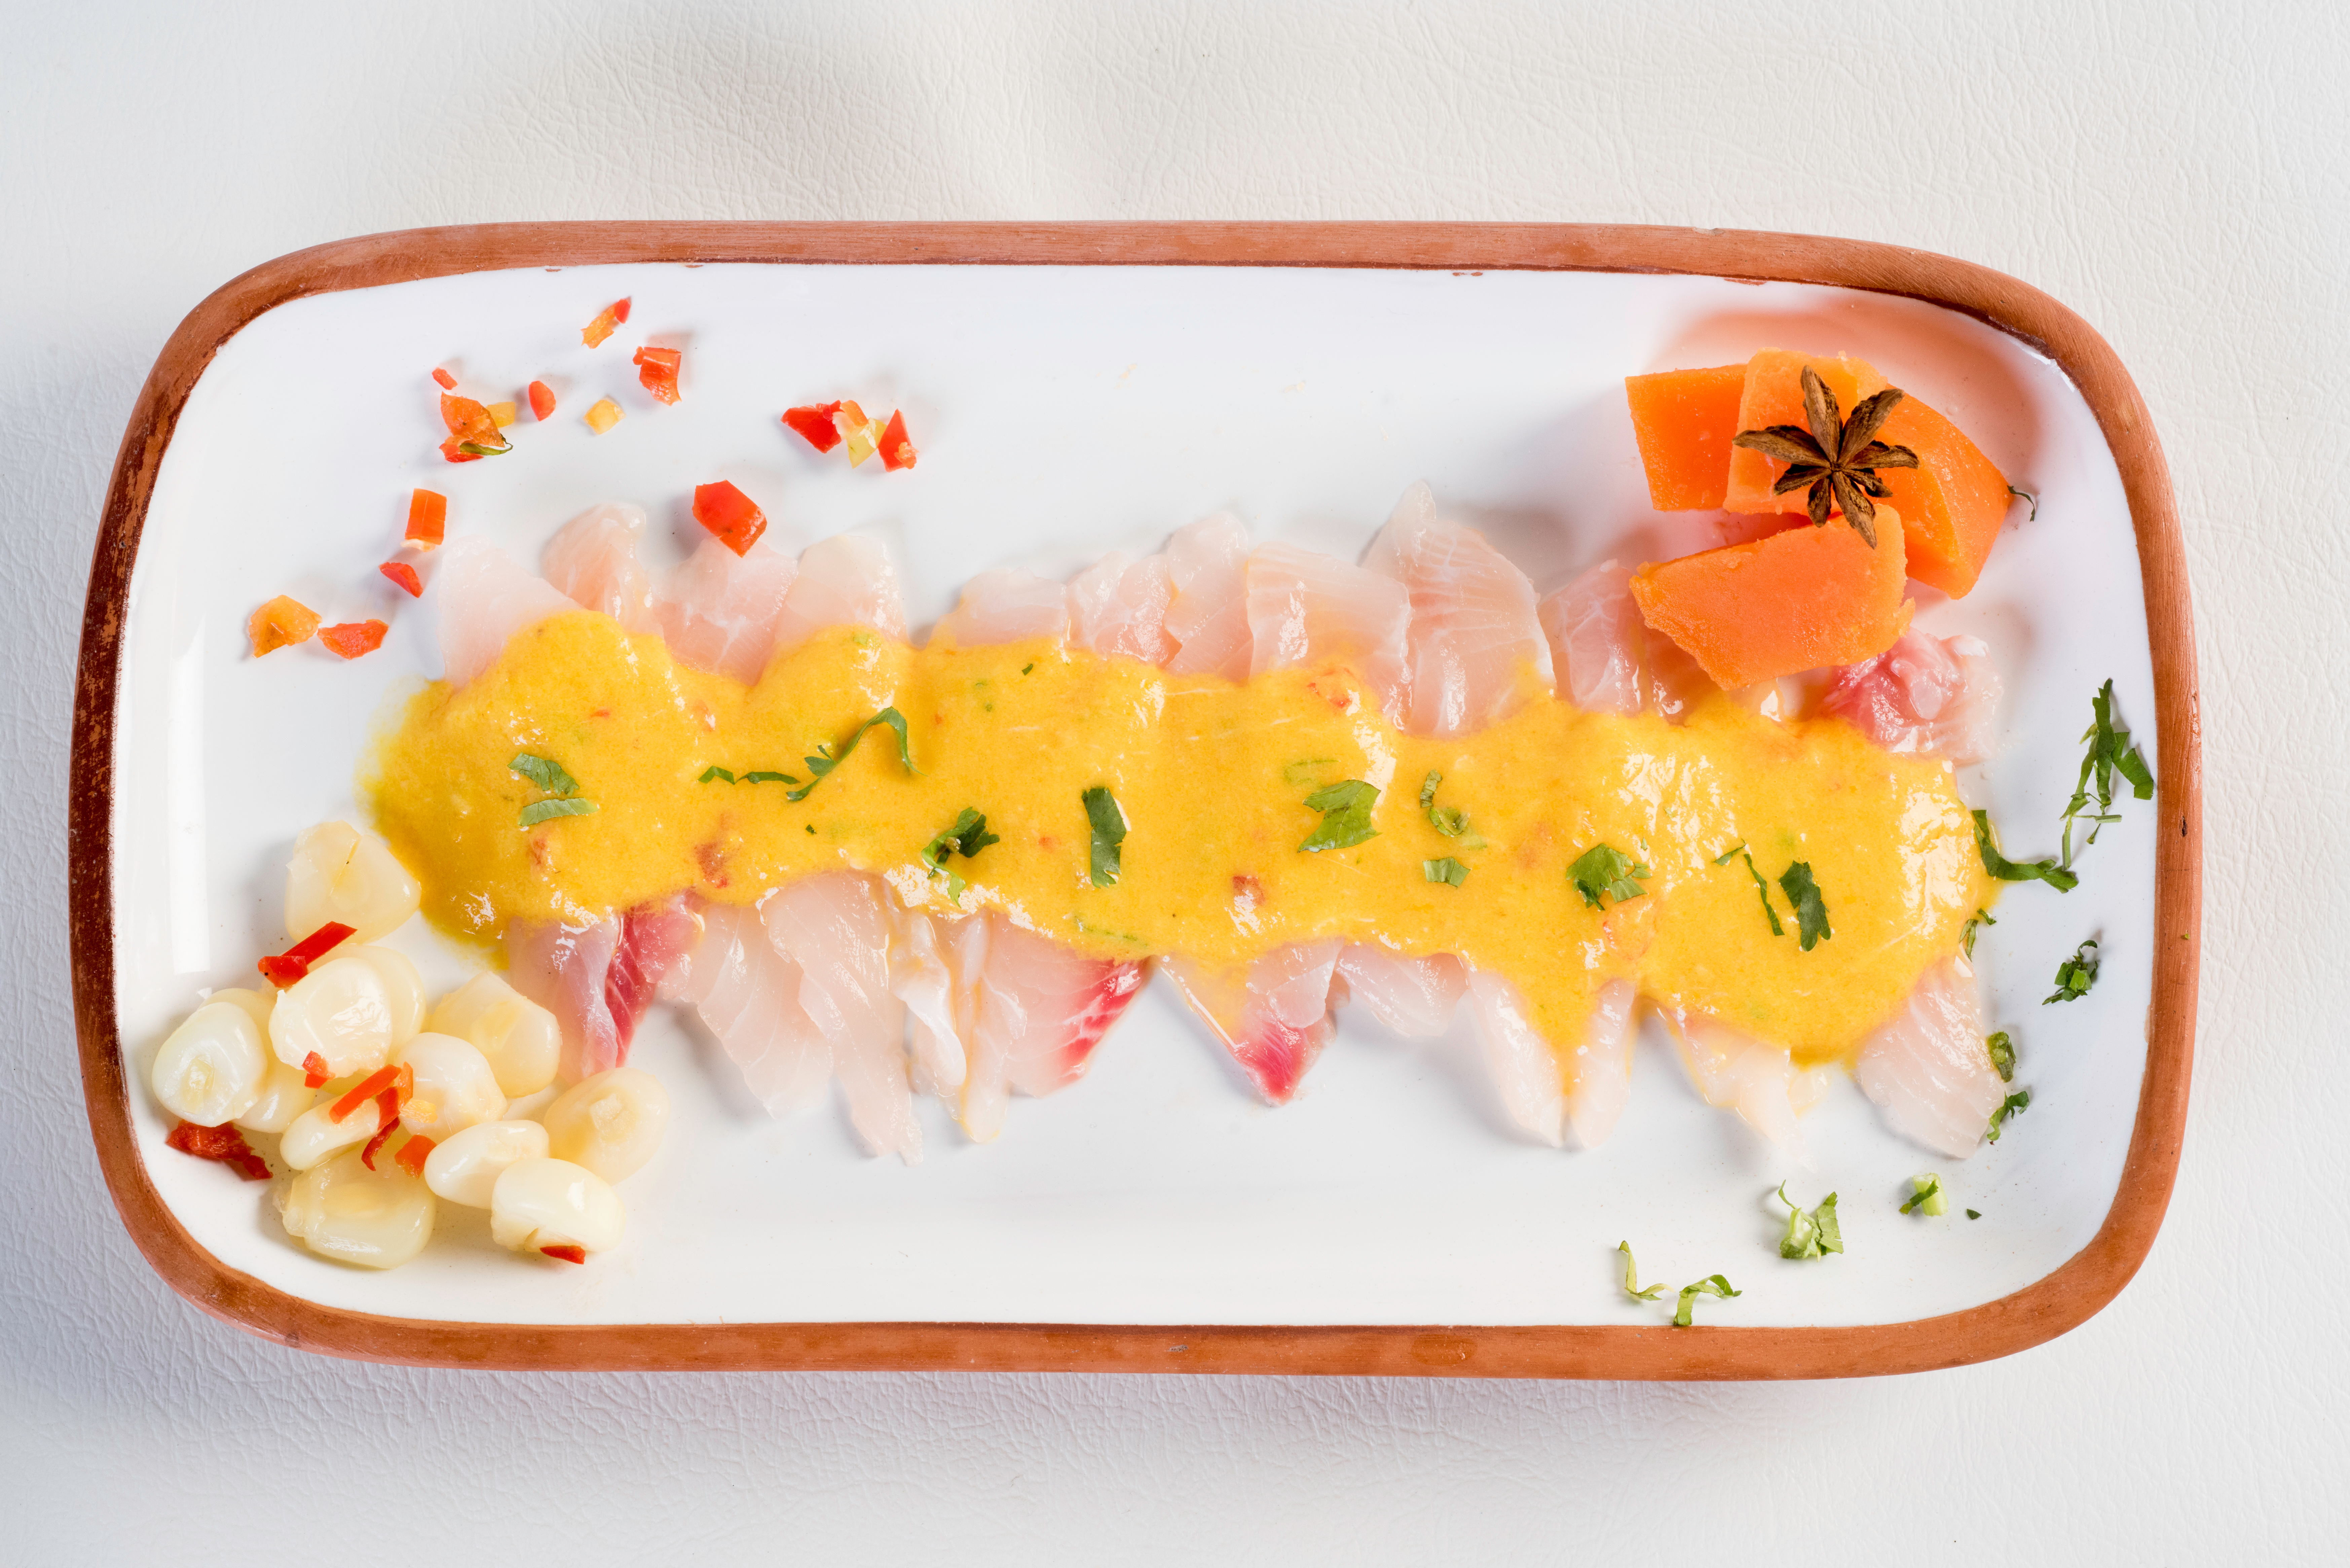 Slices of white fish sit on a platter, drizzled in a bright-yellow sauce.